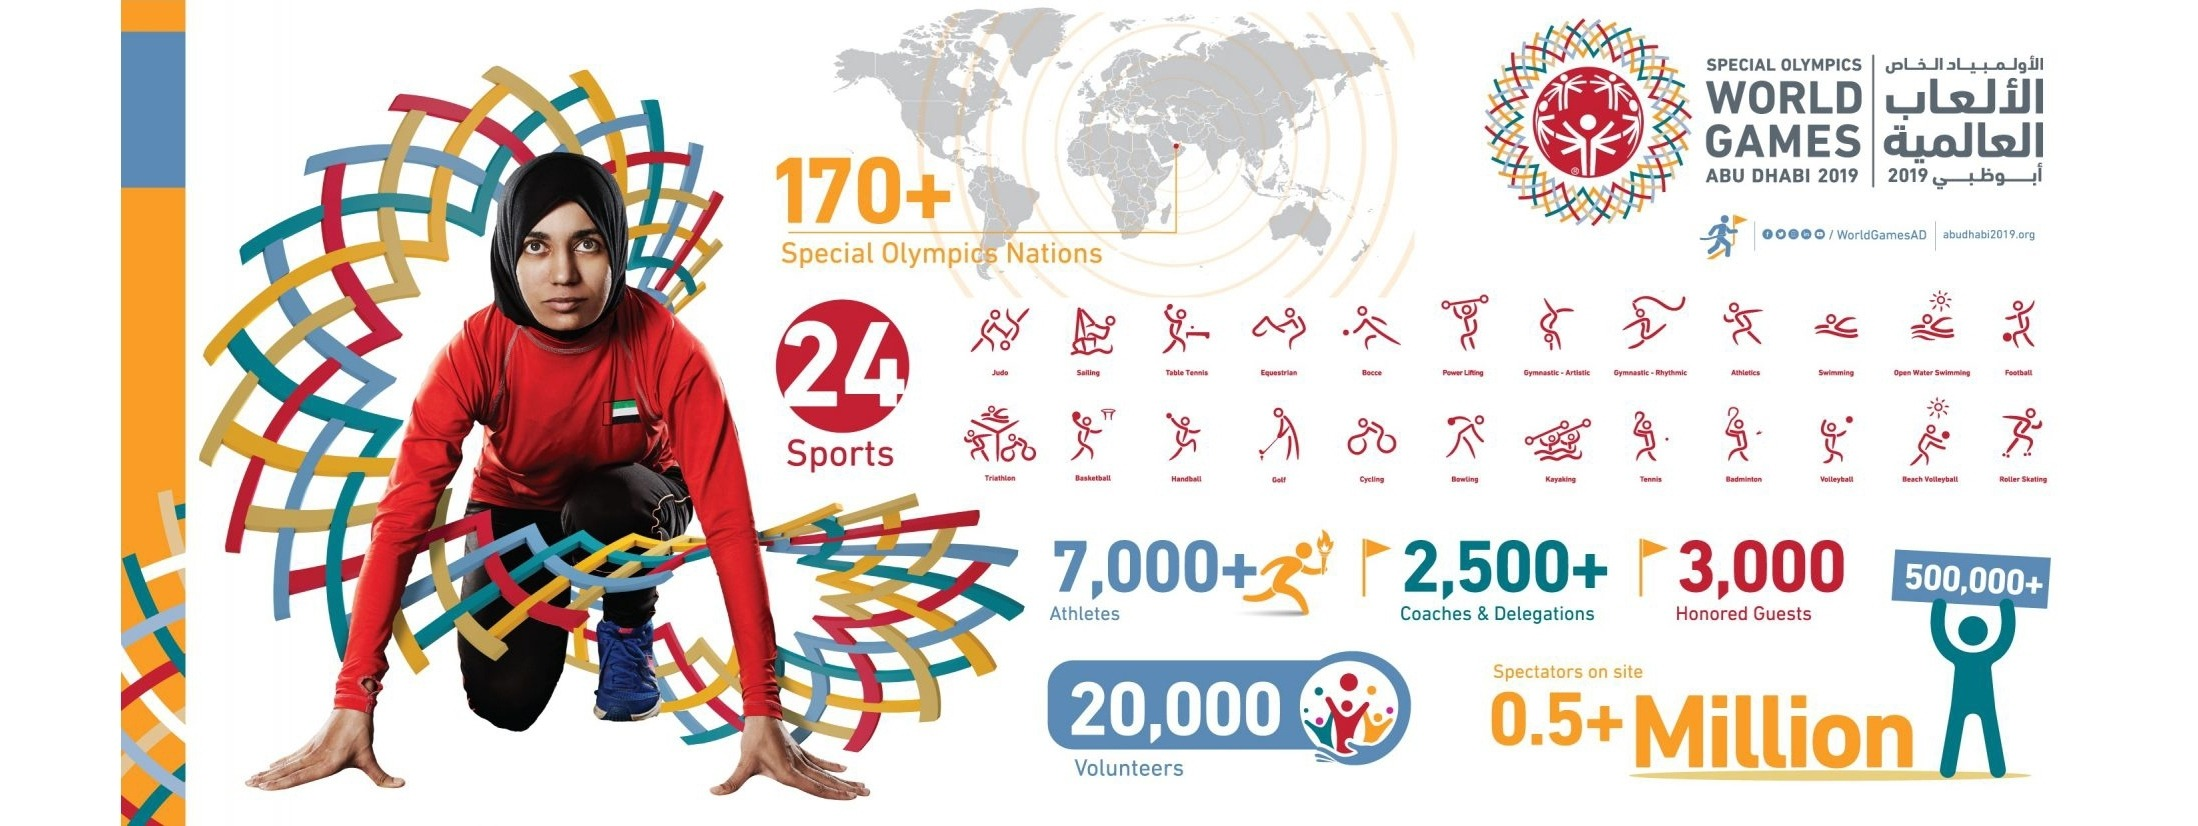 Special Olympics World Games 2019 - Coming Soon in UAE